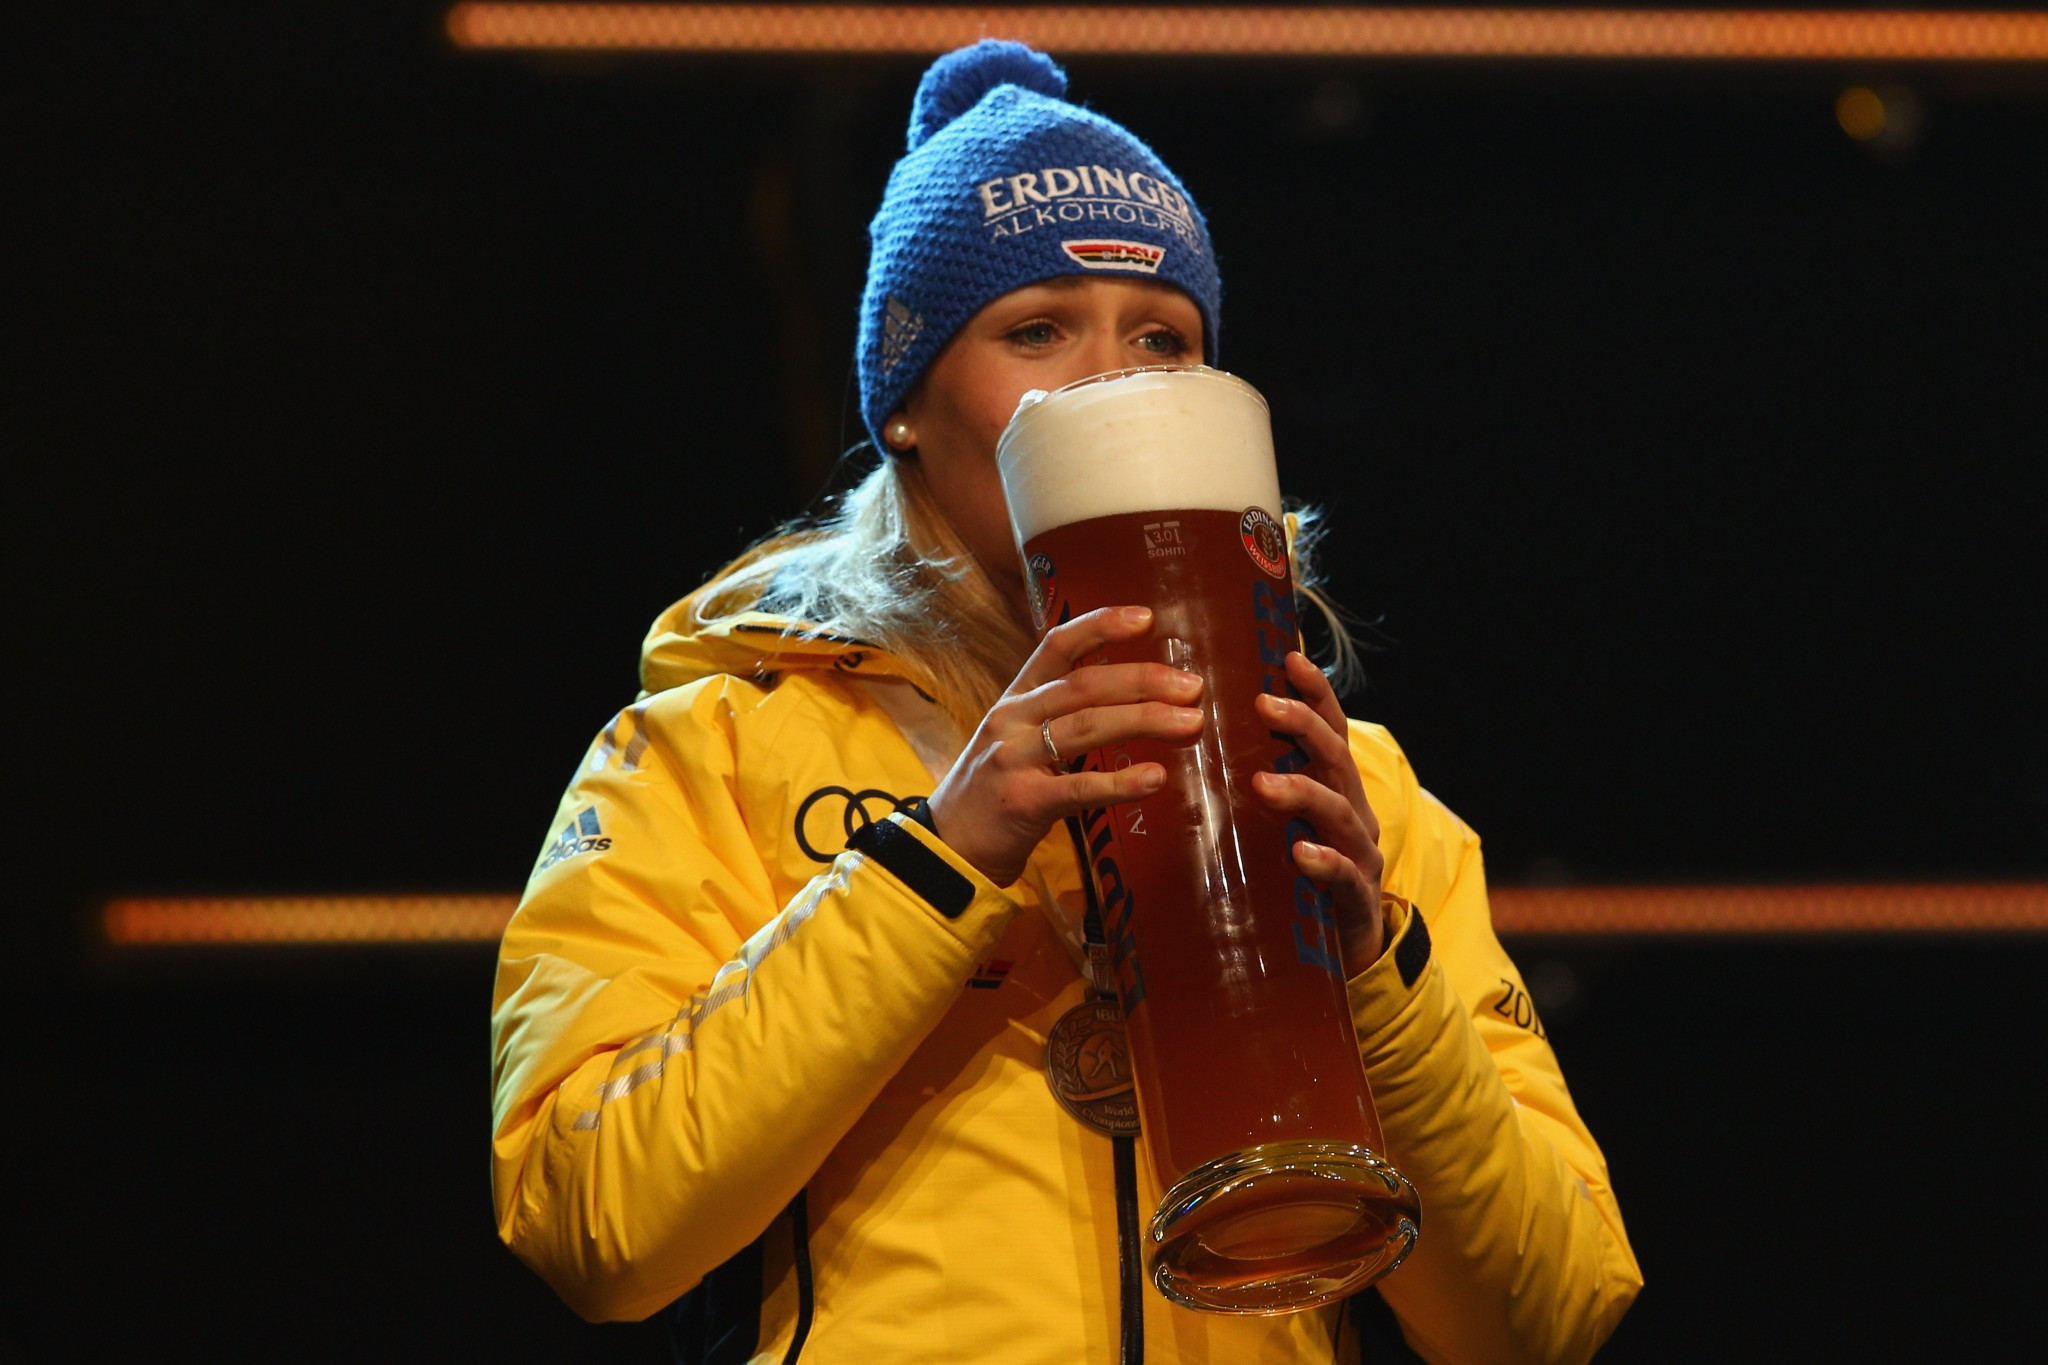 Magdalena Neuner of Germany with an Erdinger after a World Championship win in 2012 ©Getty Images